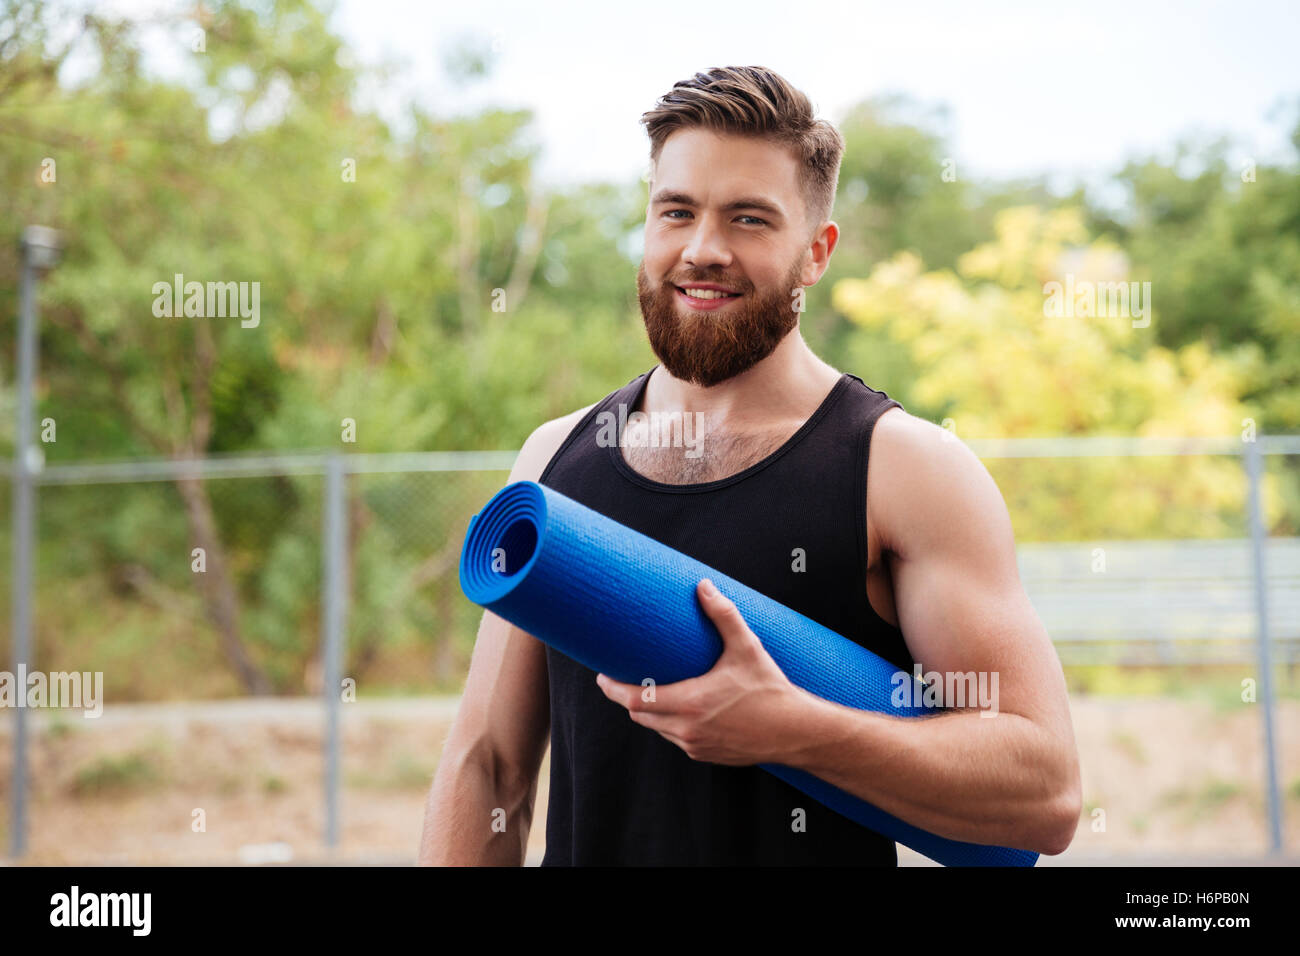 Handsome bearded young sportsman holding yoga mat and looking at camera outdoors - Stock Image